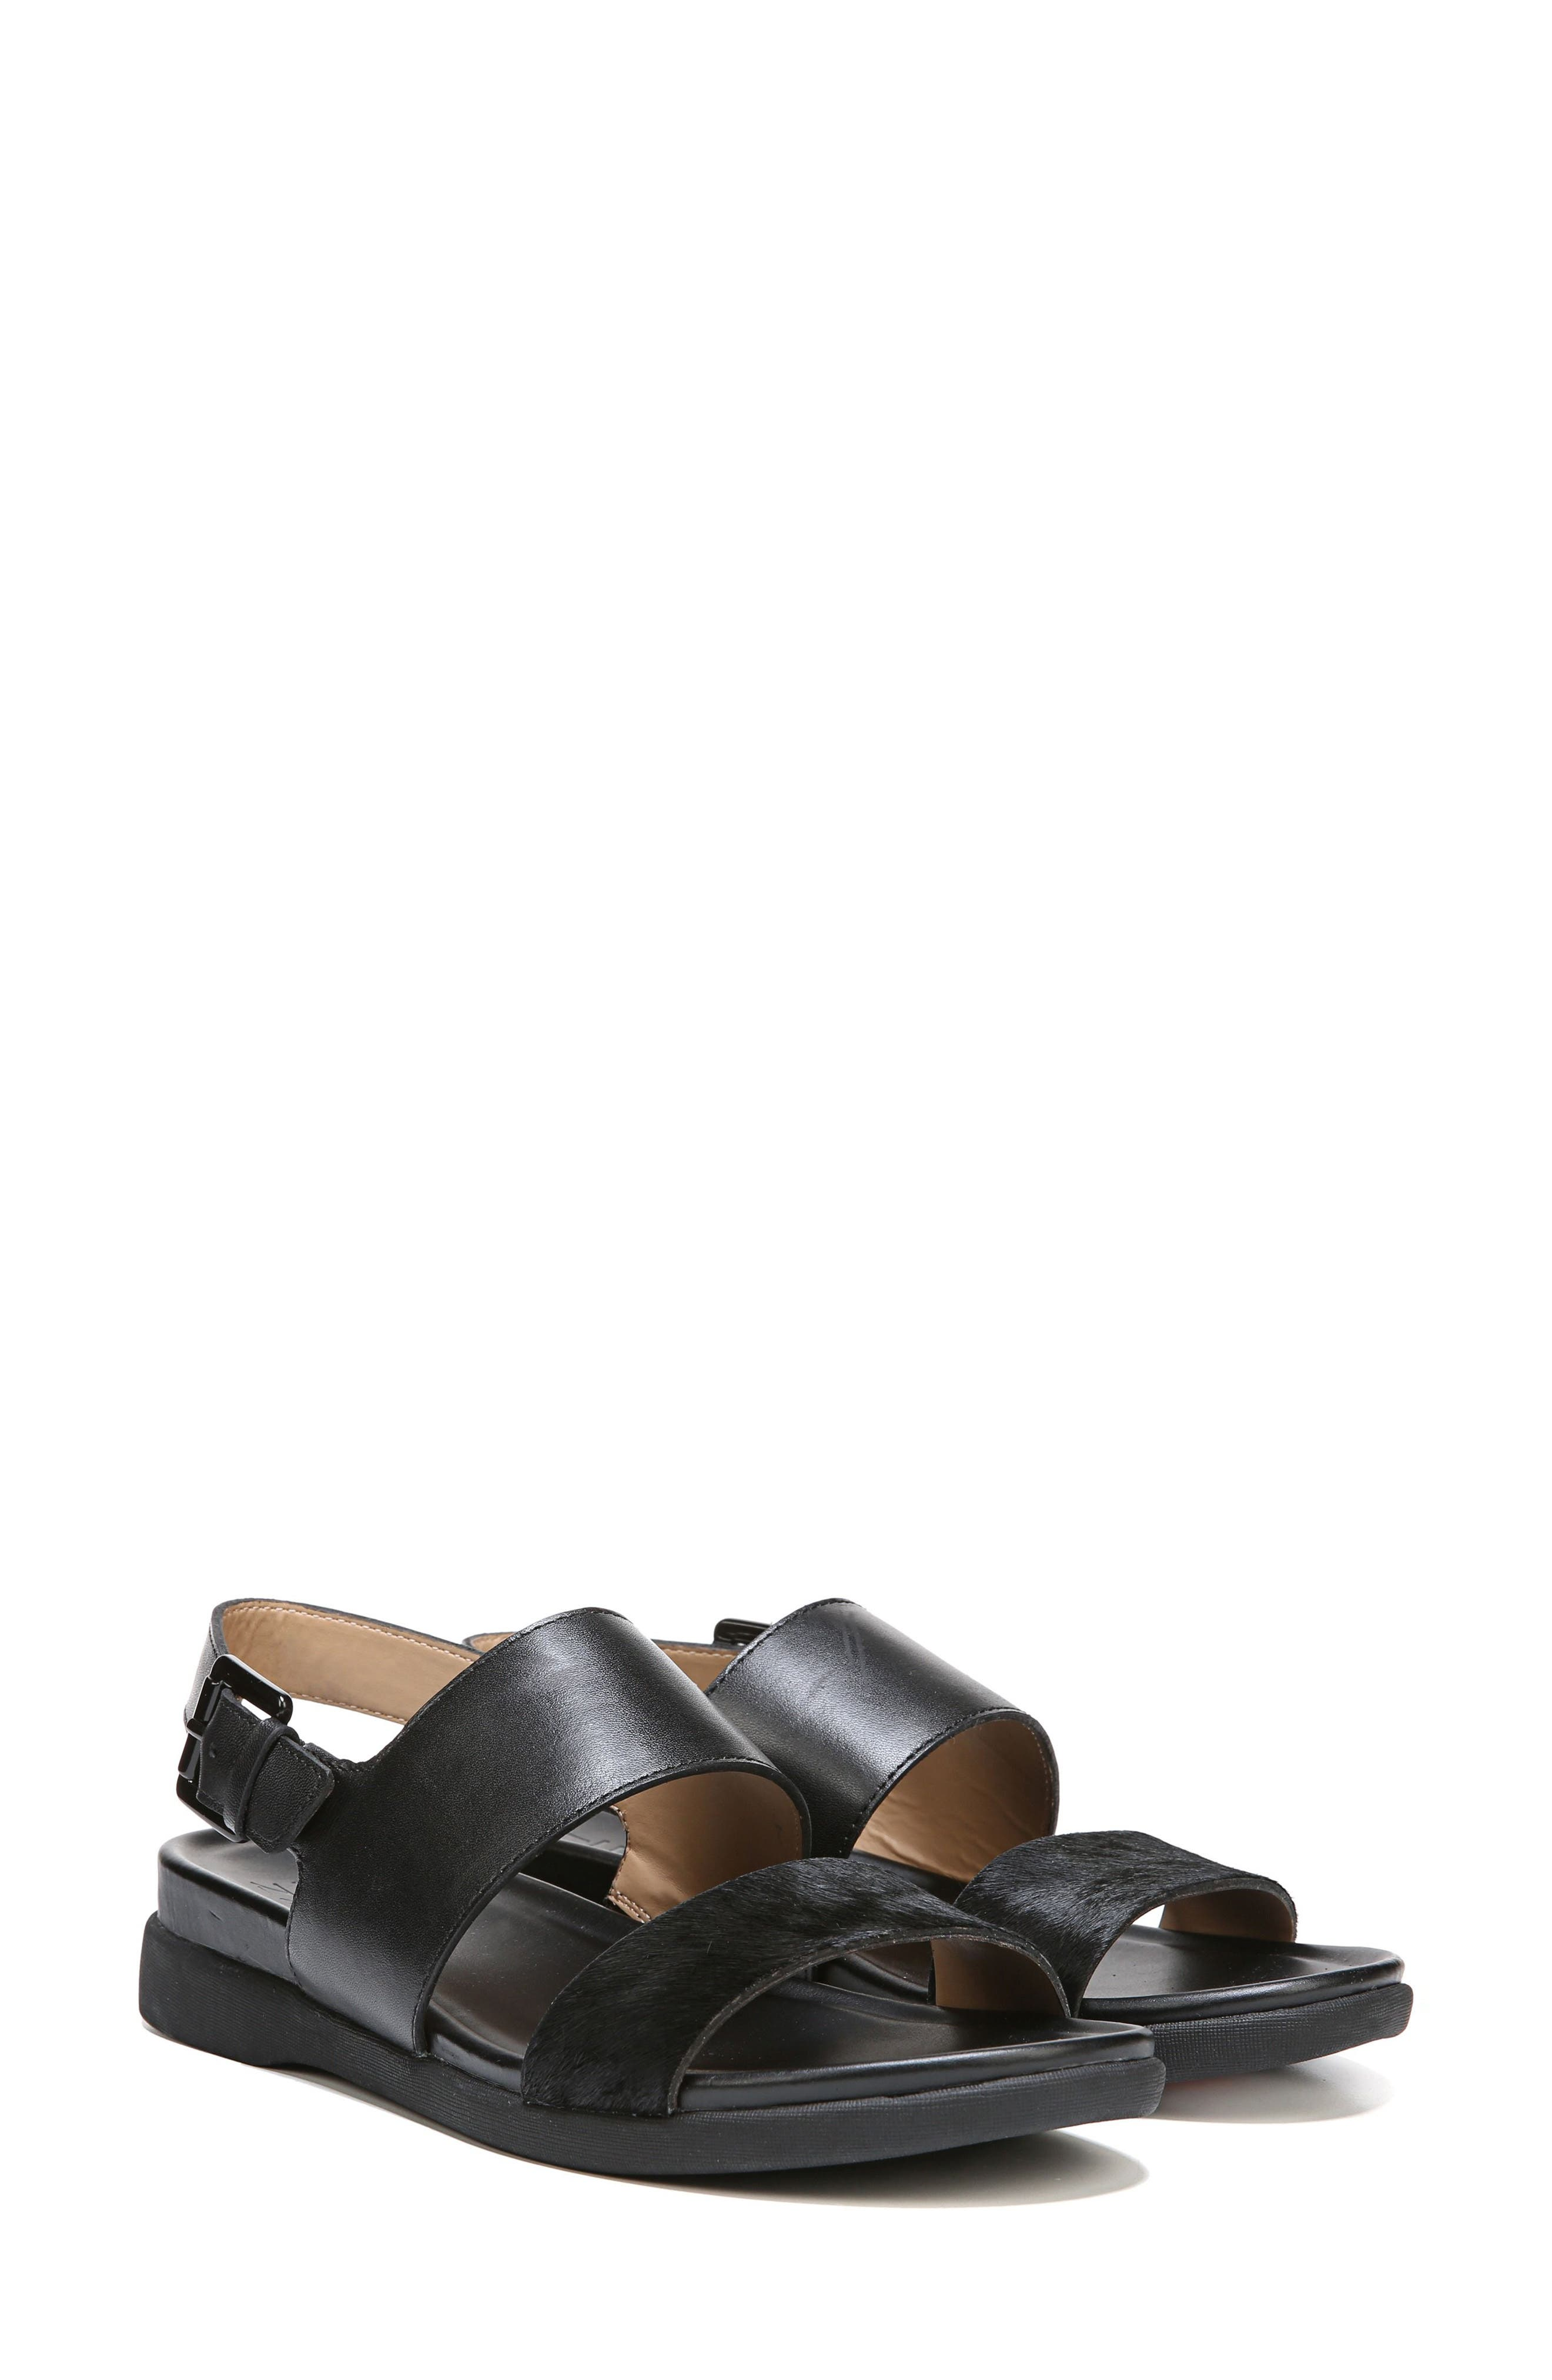 Emory Wedge Sandal,                         Main,                         color, BLACK LEATHER